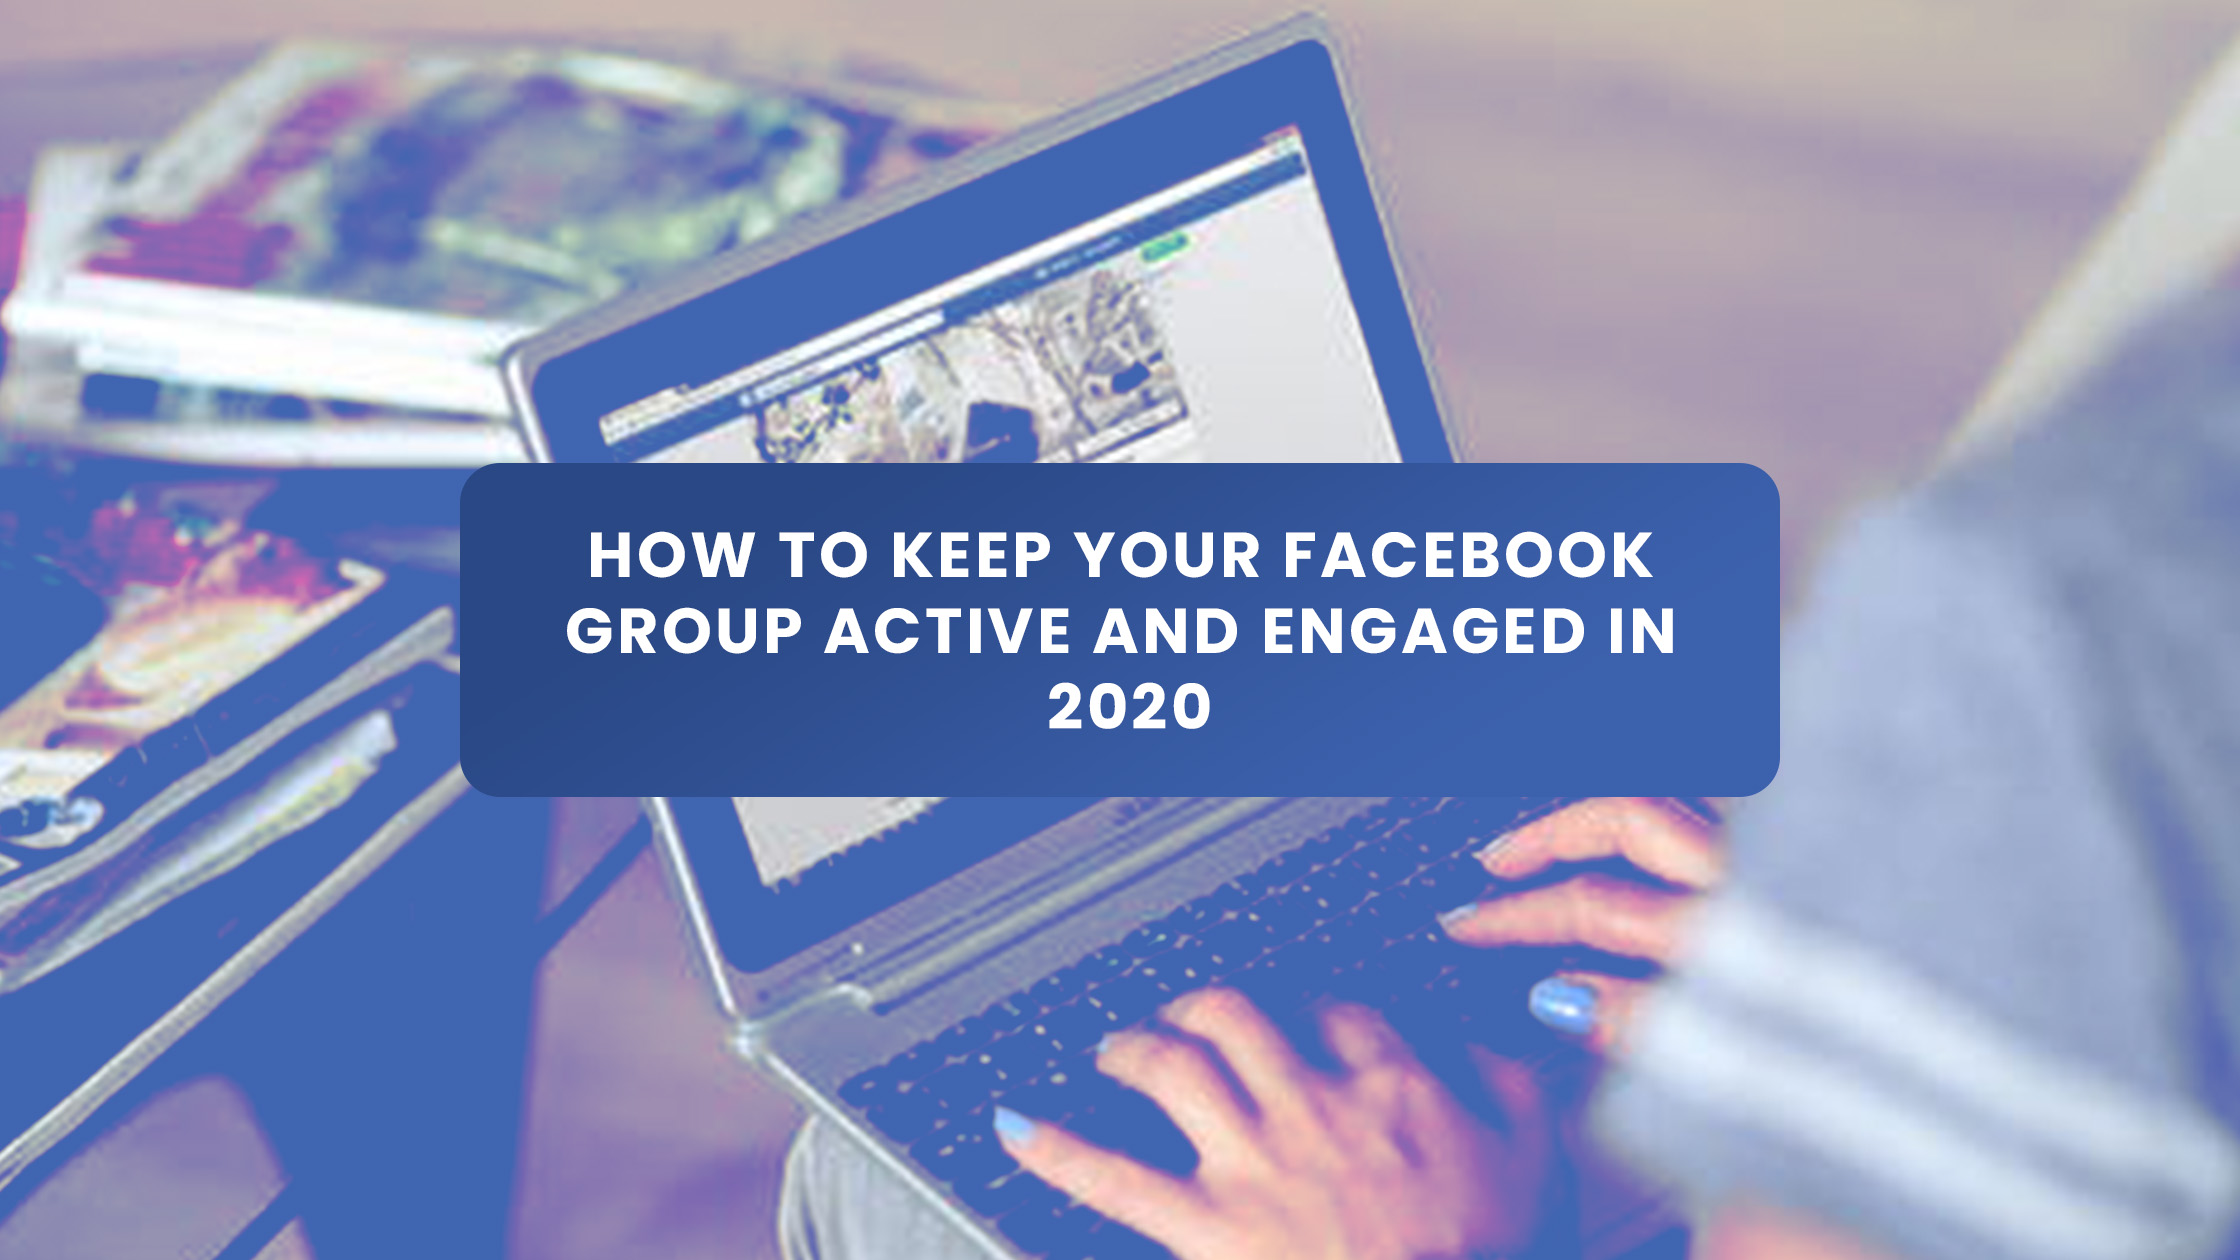 How To Keep Your Facebook Group Active and Engaged in 2020